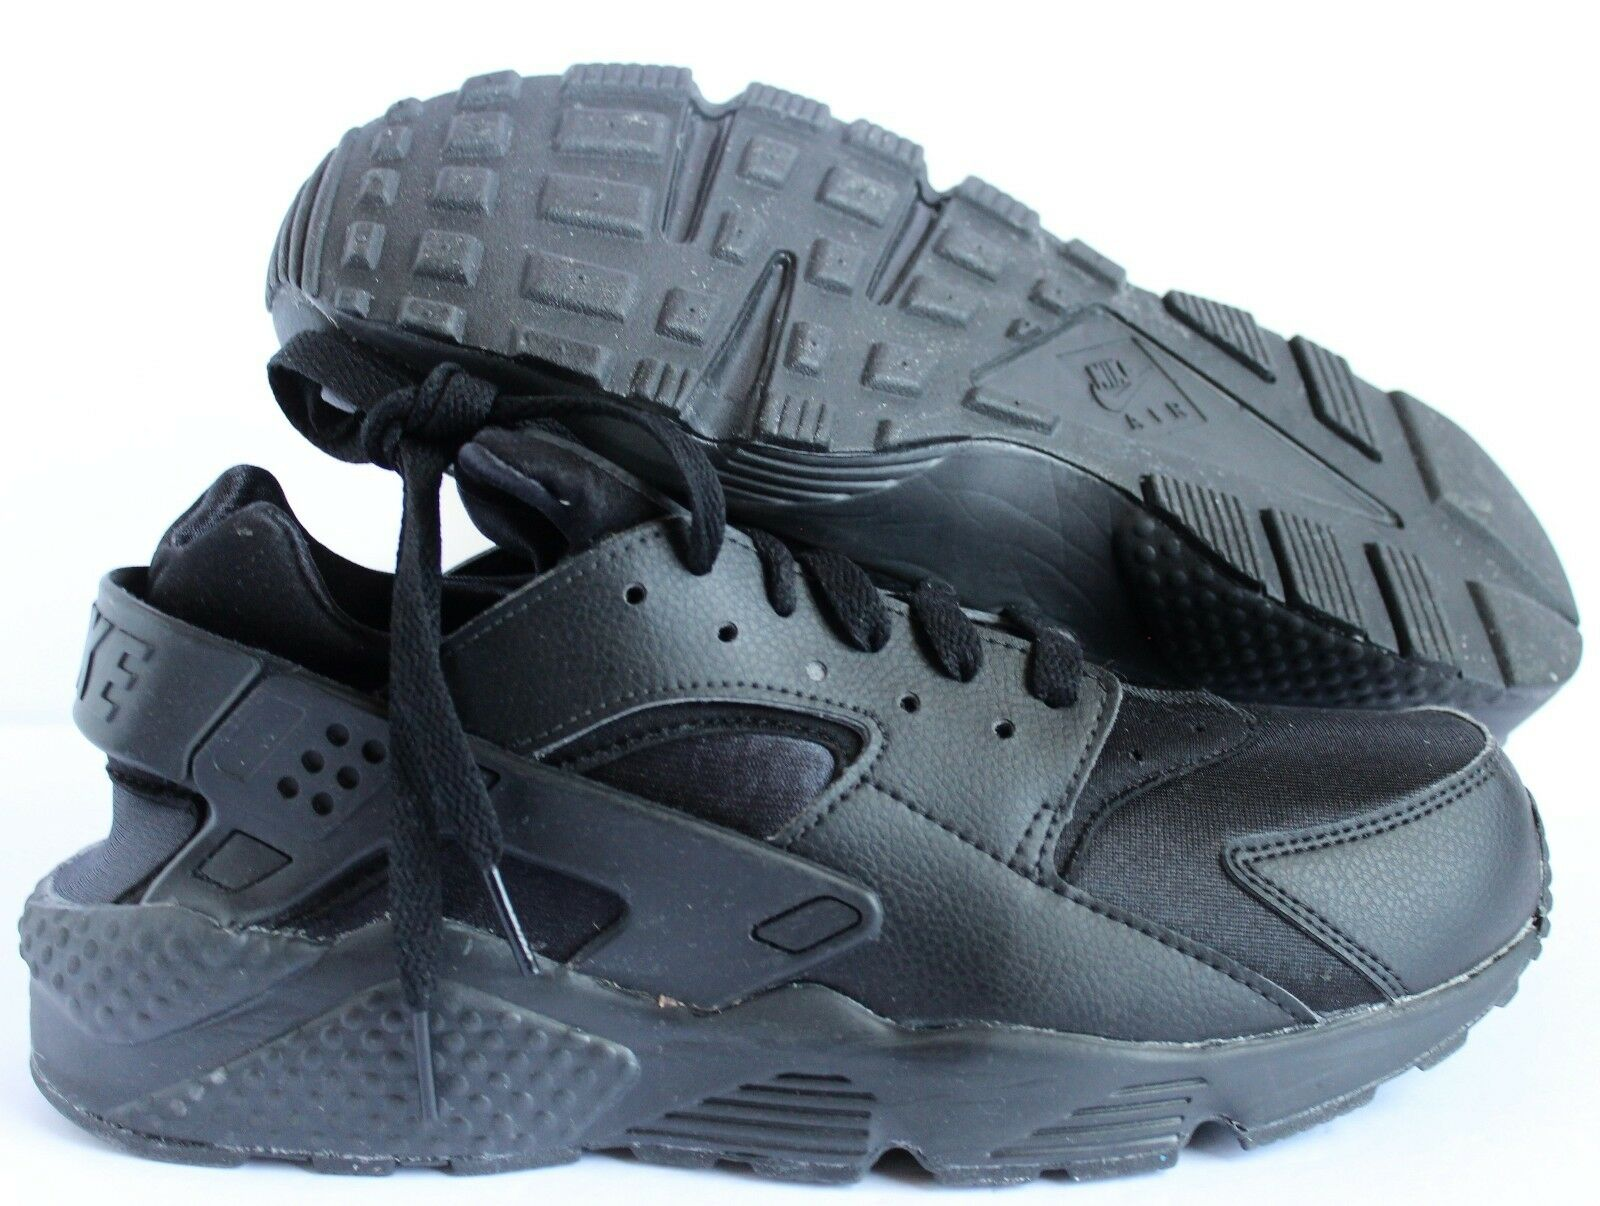 Nike Men's Air Huarache Premium ID Black  SZ 9.5  [777330-991]